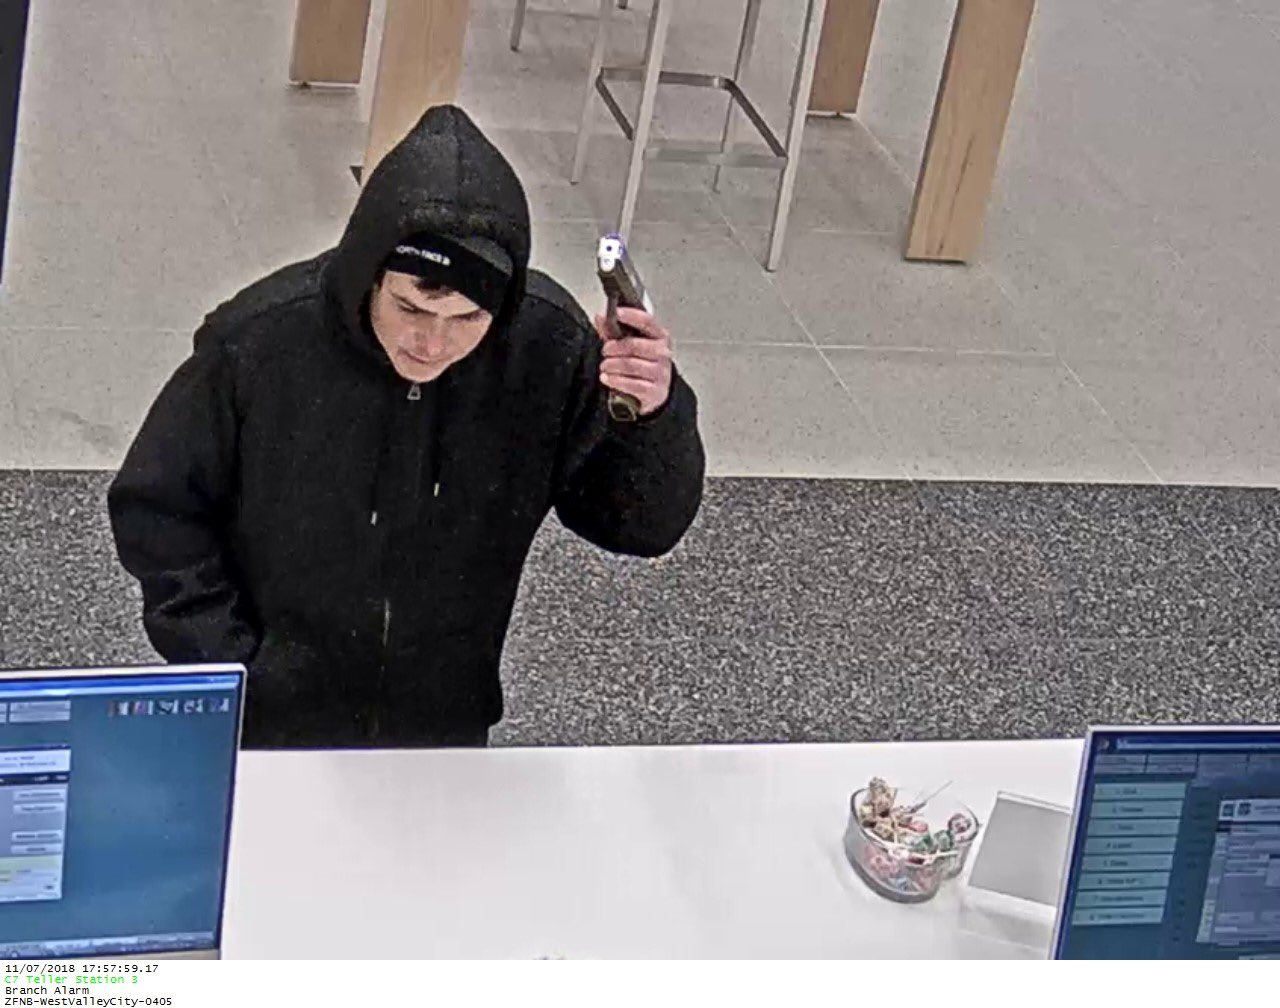 The West Valley Police Department is looking to identify a suspect who robbed a Zions Bank at gunpoint. (Photo courtesy of the West Valley Police Department)